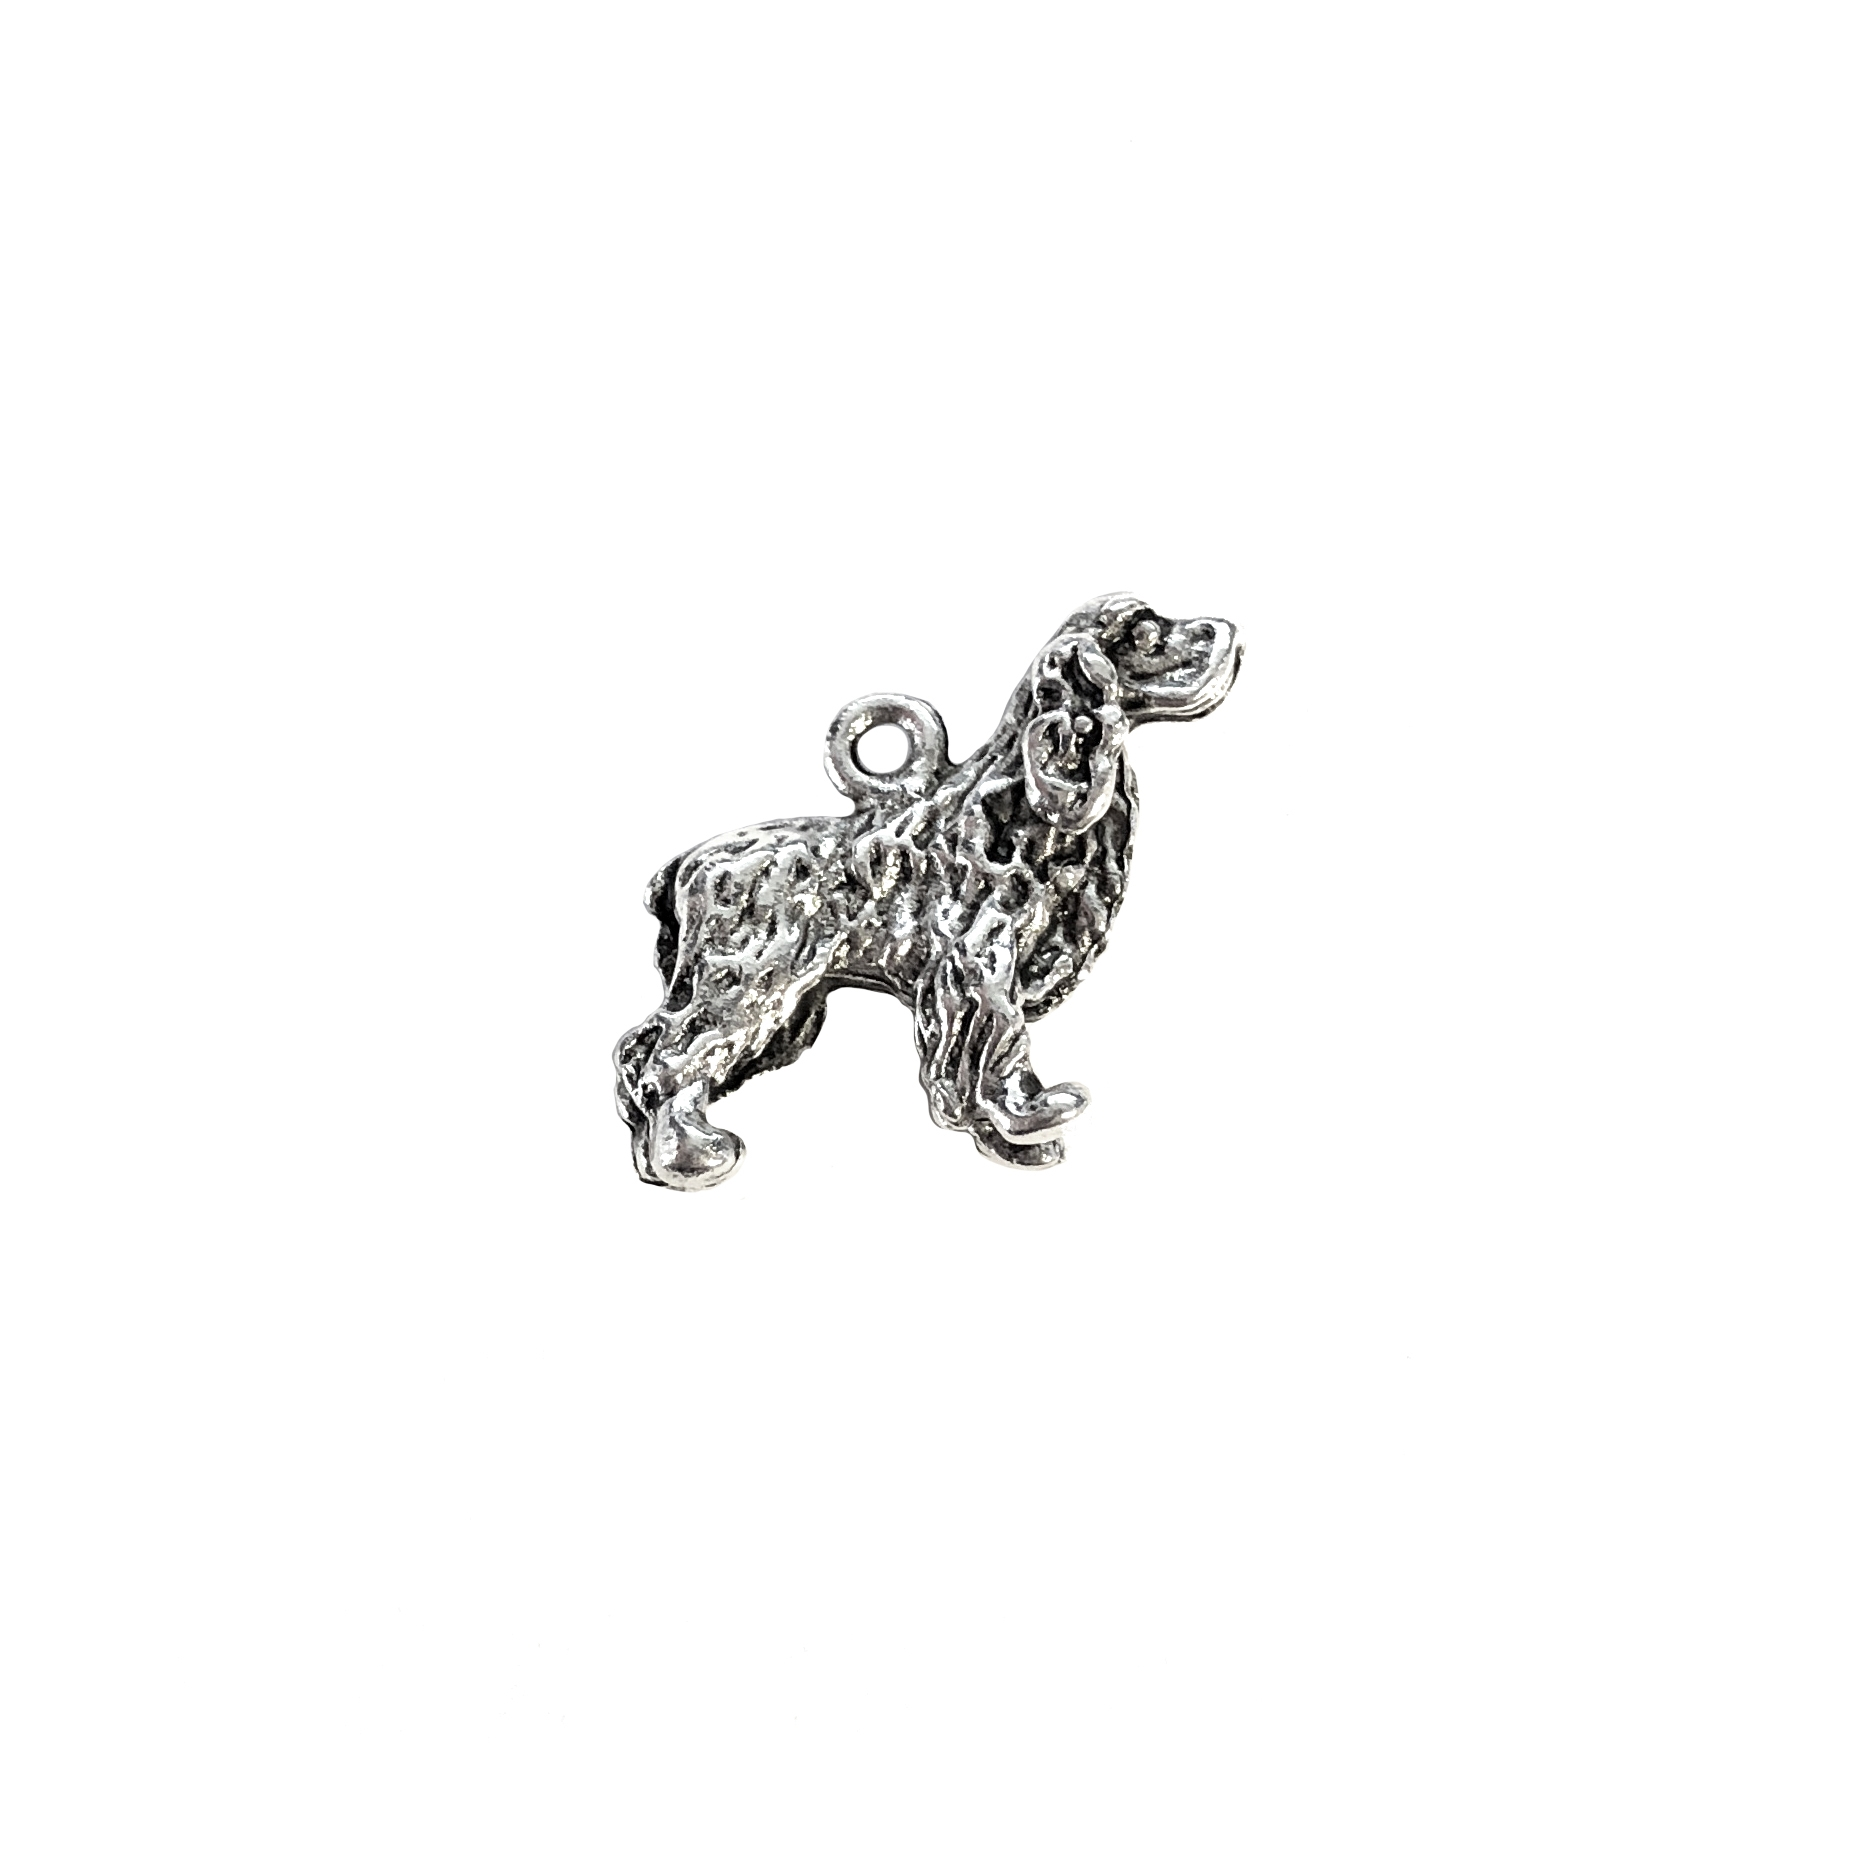 Cocker spaniel charm, sitting dog, 07390, Old Silver, plated pewter, pewter, charm, dog charm, US made jewelry supplies, nickel free jewelry supplies, b'sue boutiques, dog jewelry, silver dog, silver charm,